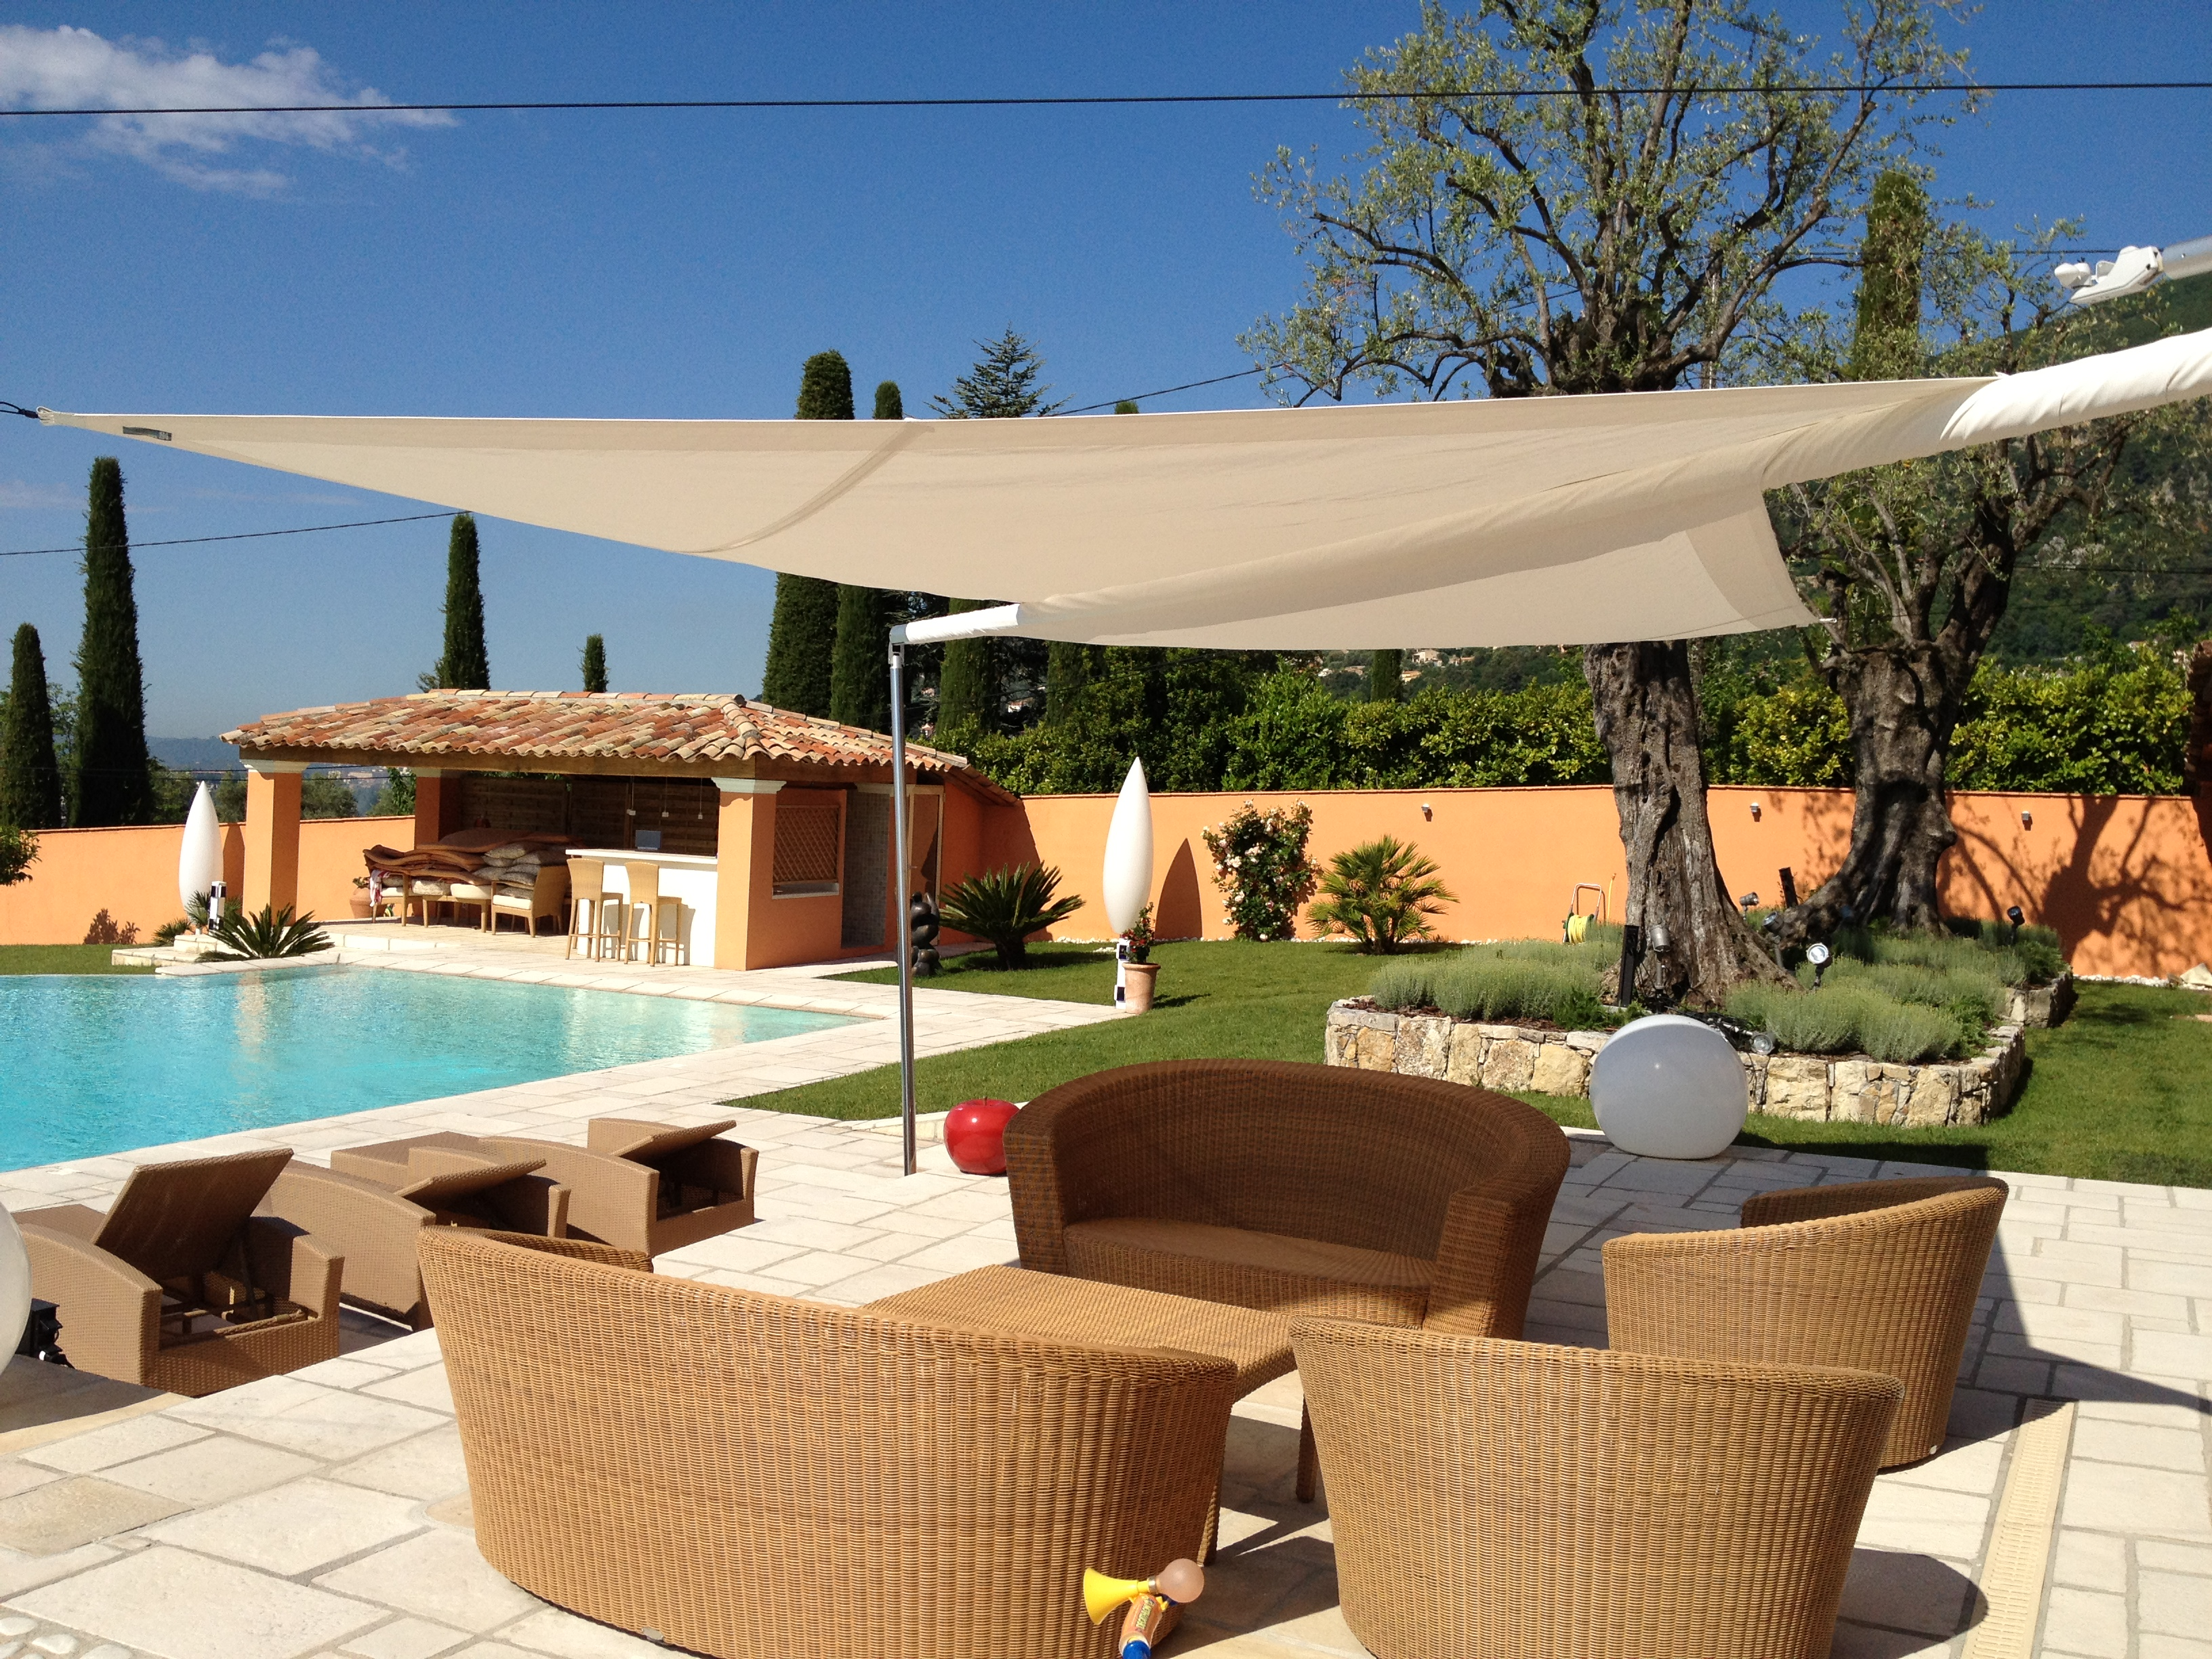 Voile d ombrage pour terrasse amazing voile jardin - Voiles d ombrage pour terrasse ...